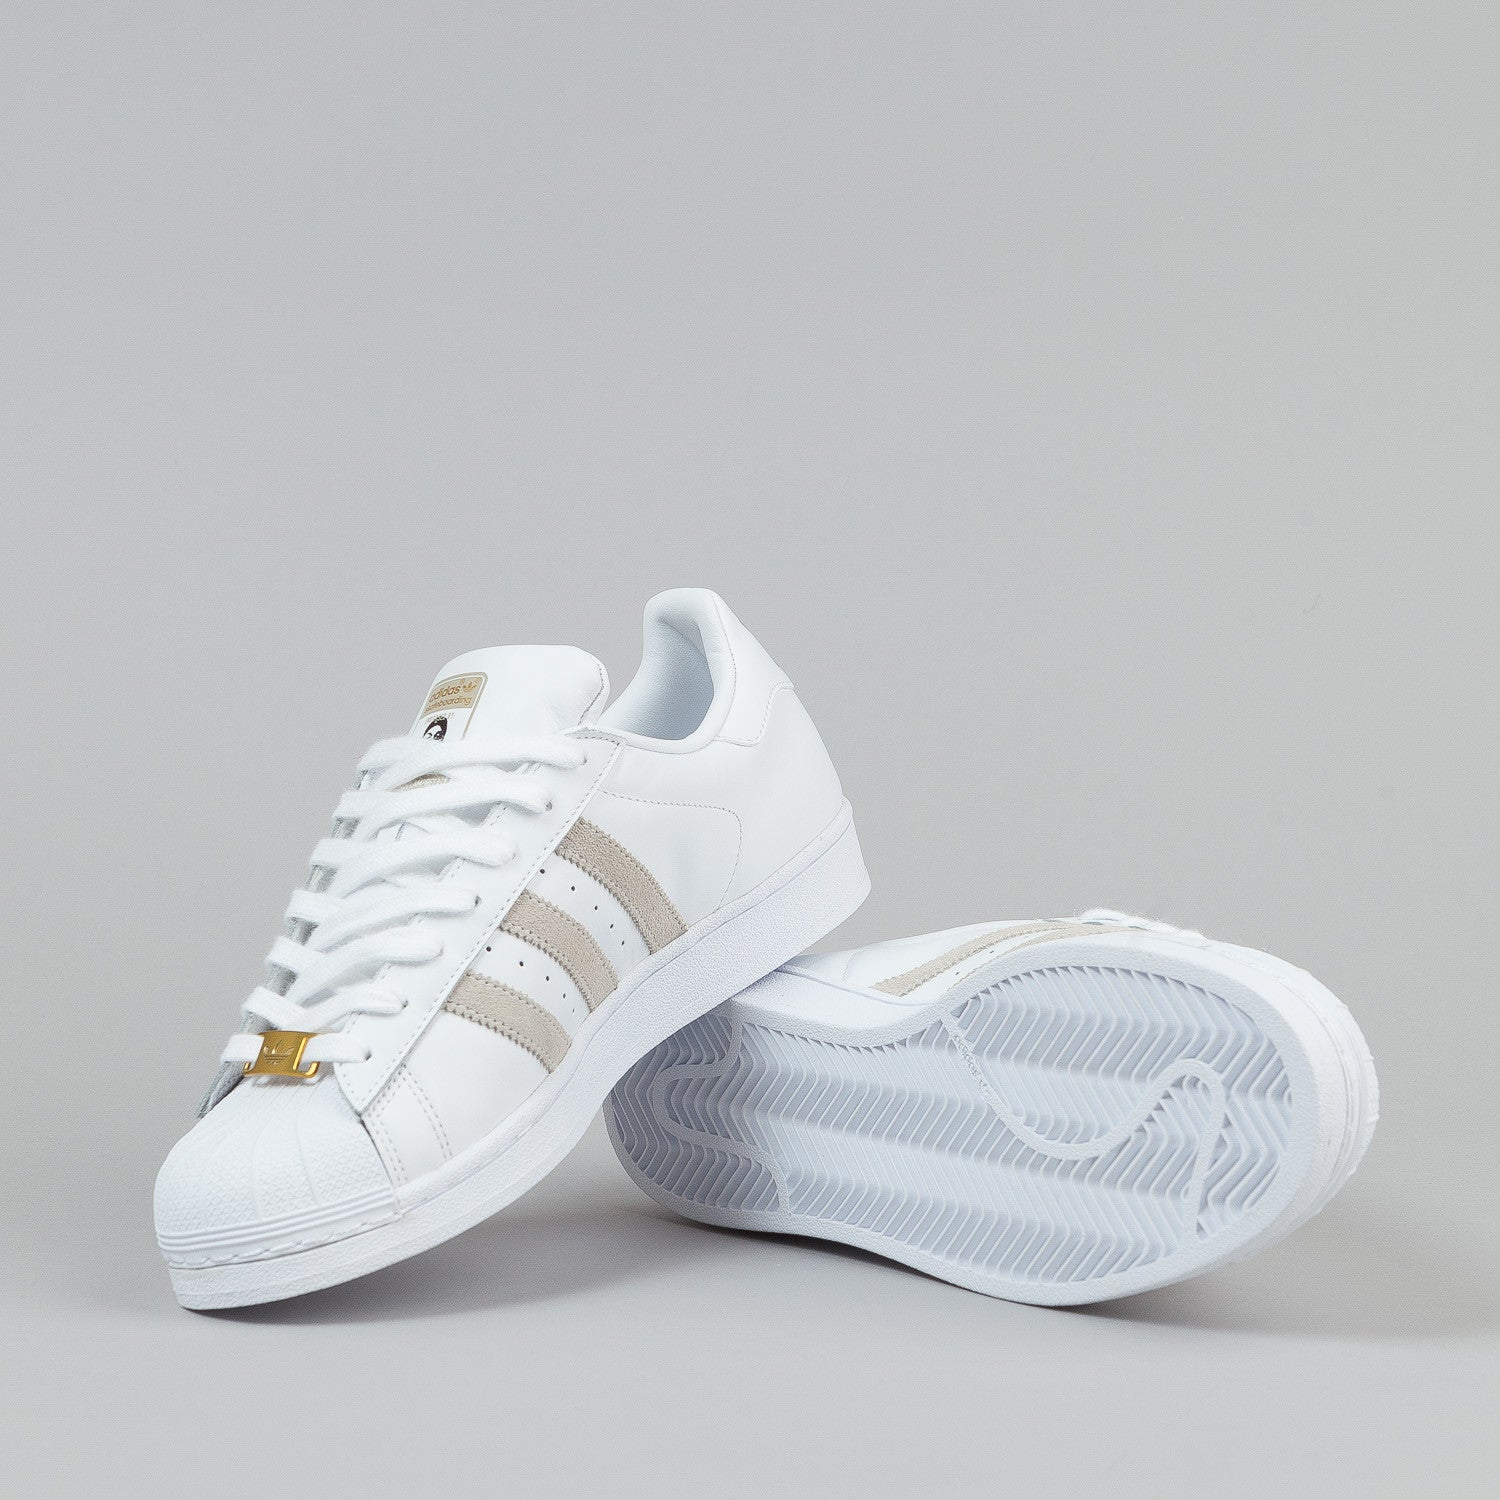 adidas Originals Superstar up W White Black Womens Wedges